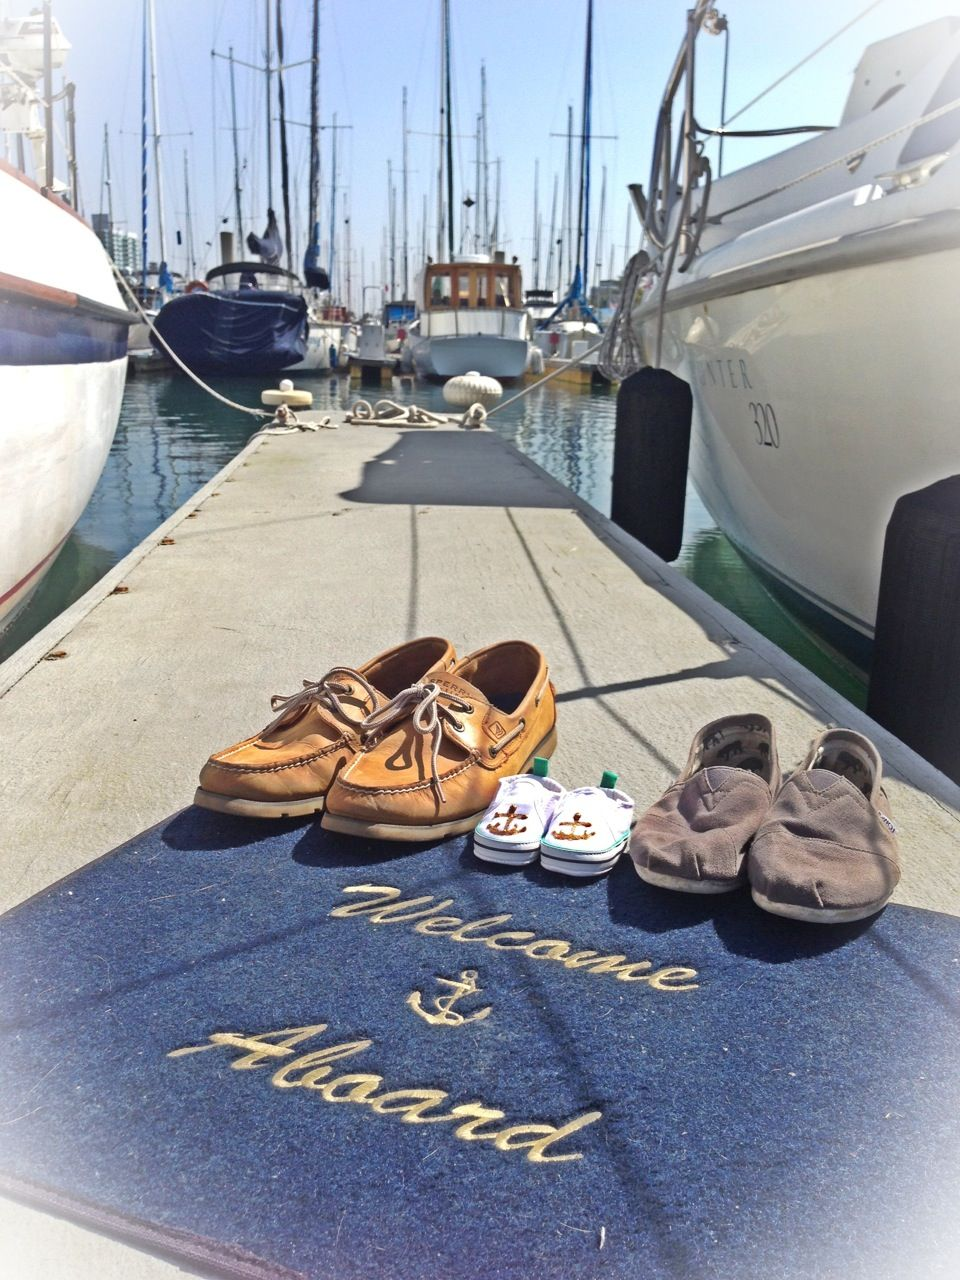 our nautical baby announcement a new member is joining our crew in september